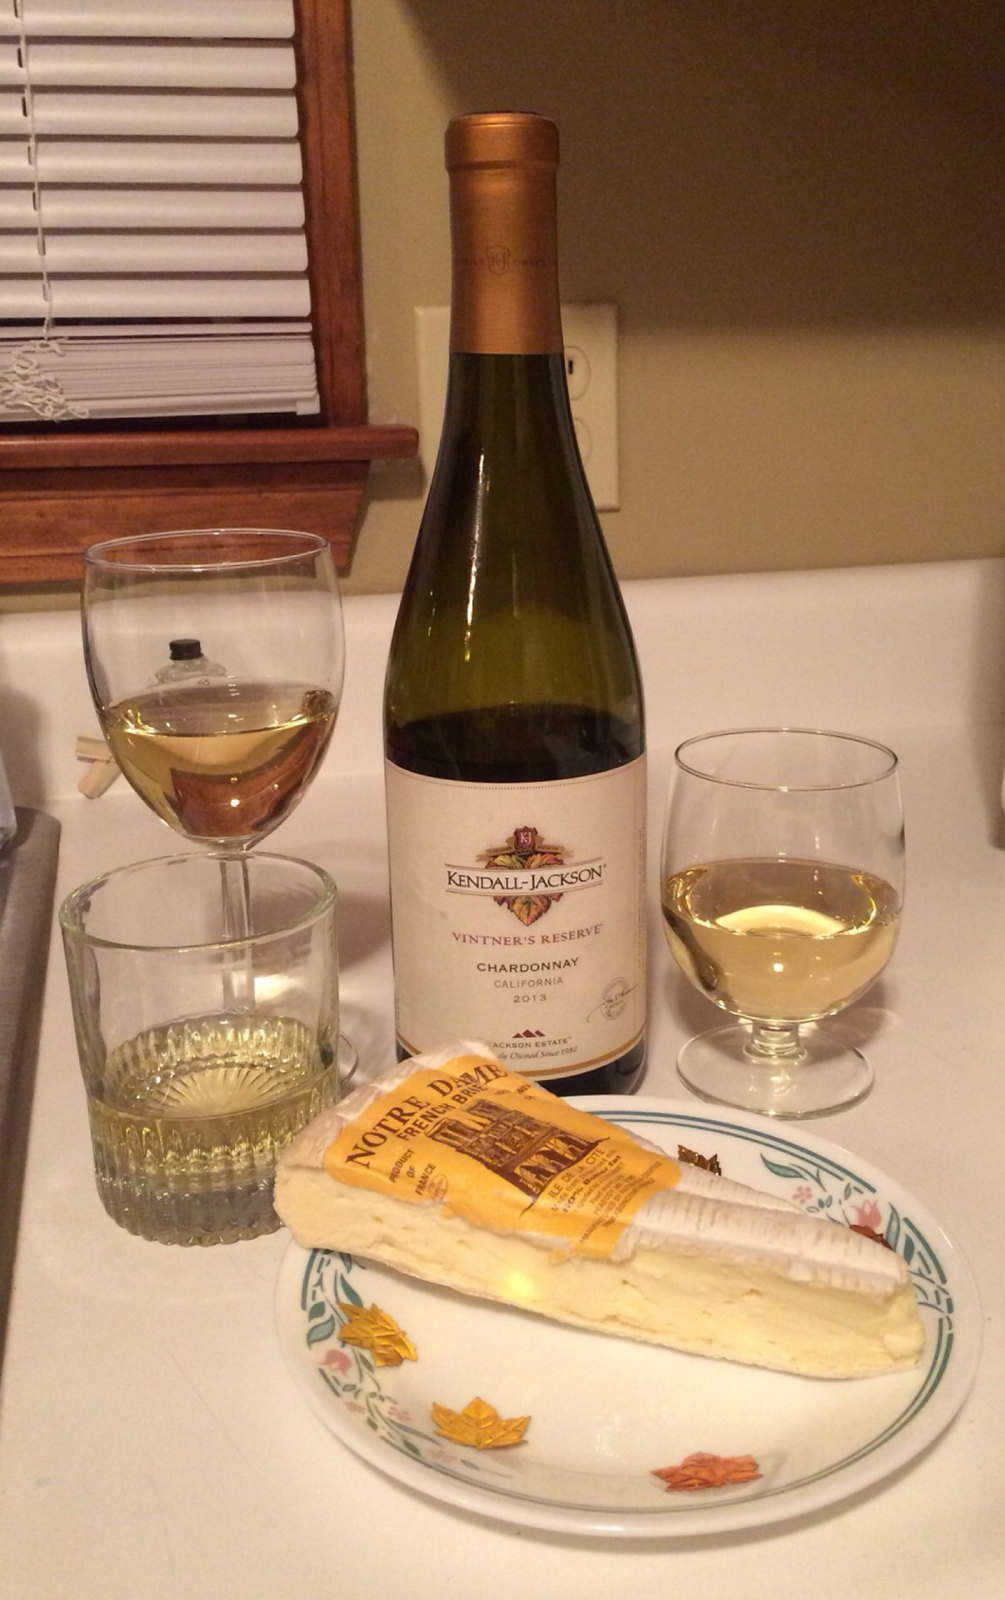 Kendall Jackson Chardonnay and Notre Dame French Brie 1